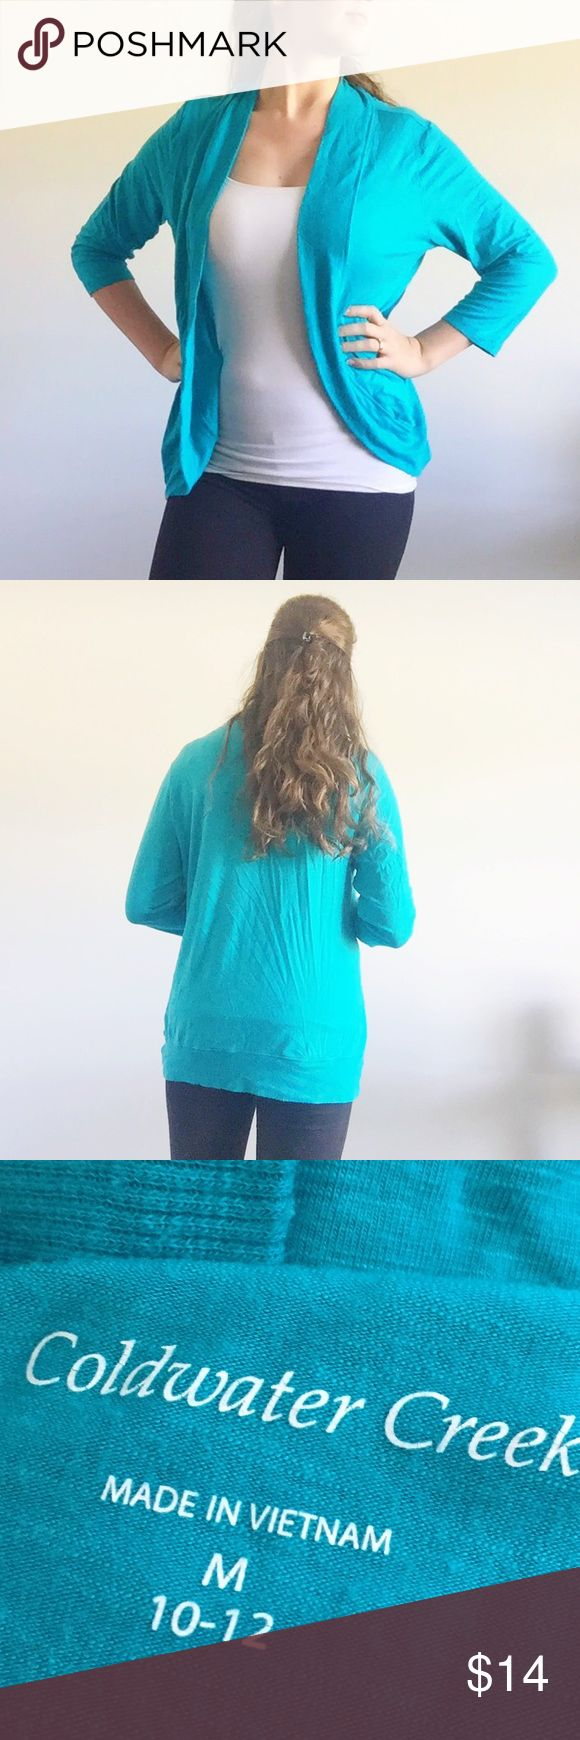 Coldwater Creek turquoise cardigan long top This top fits great over leggings, and can be worn with lots of different colors under it. Beautiful open design, works great when you have to dress in layers in the fall! Coldwater Creek Tops